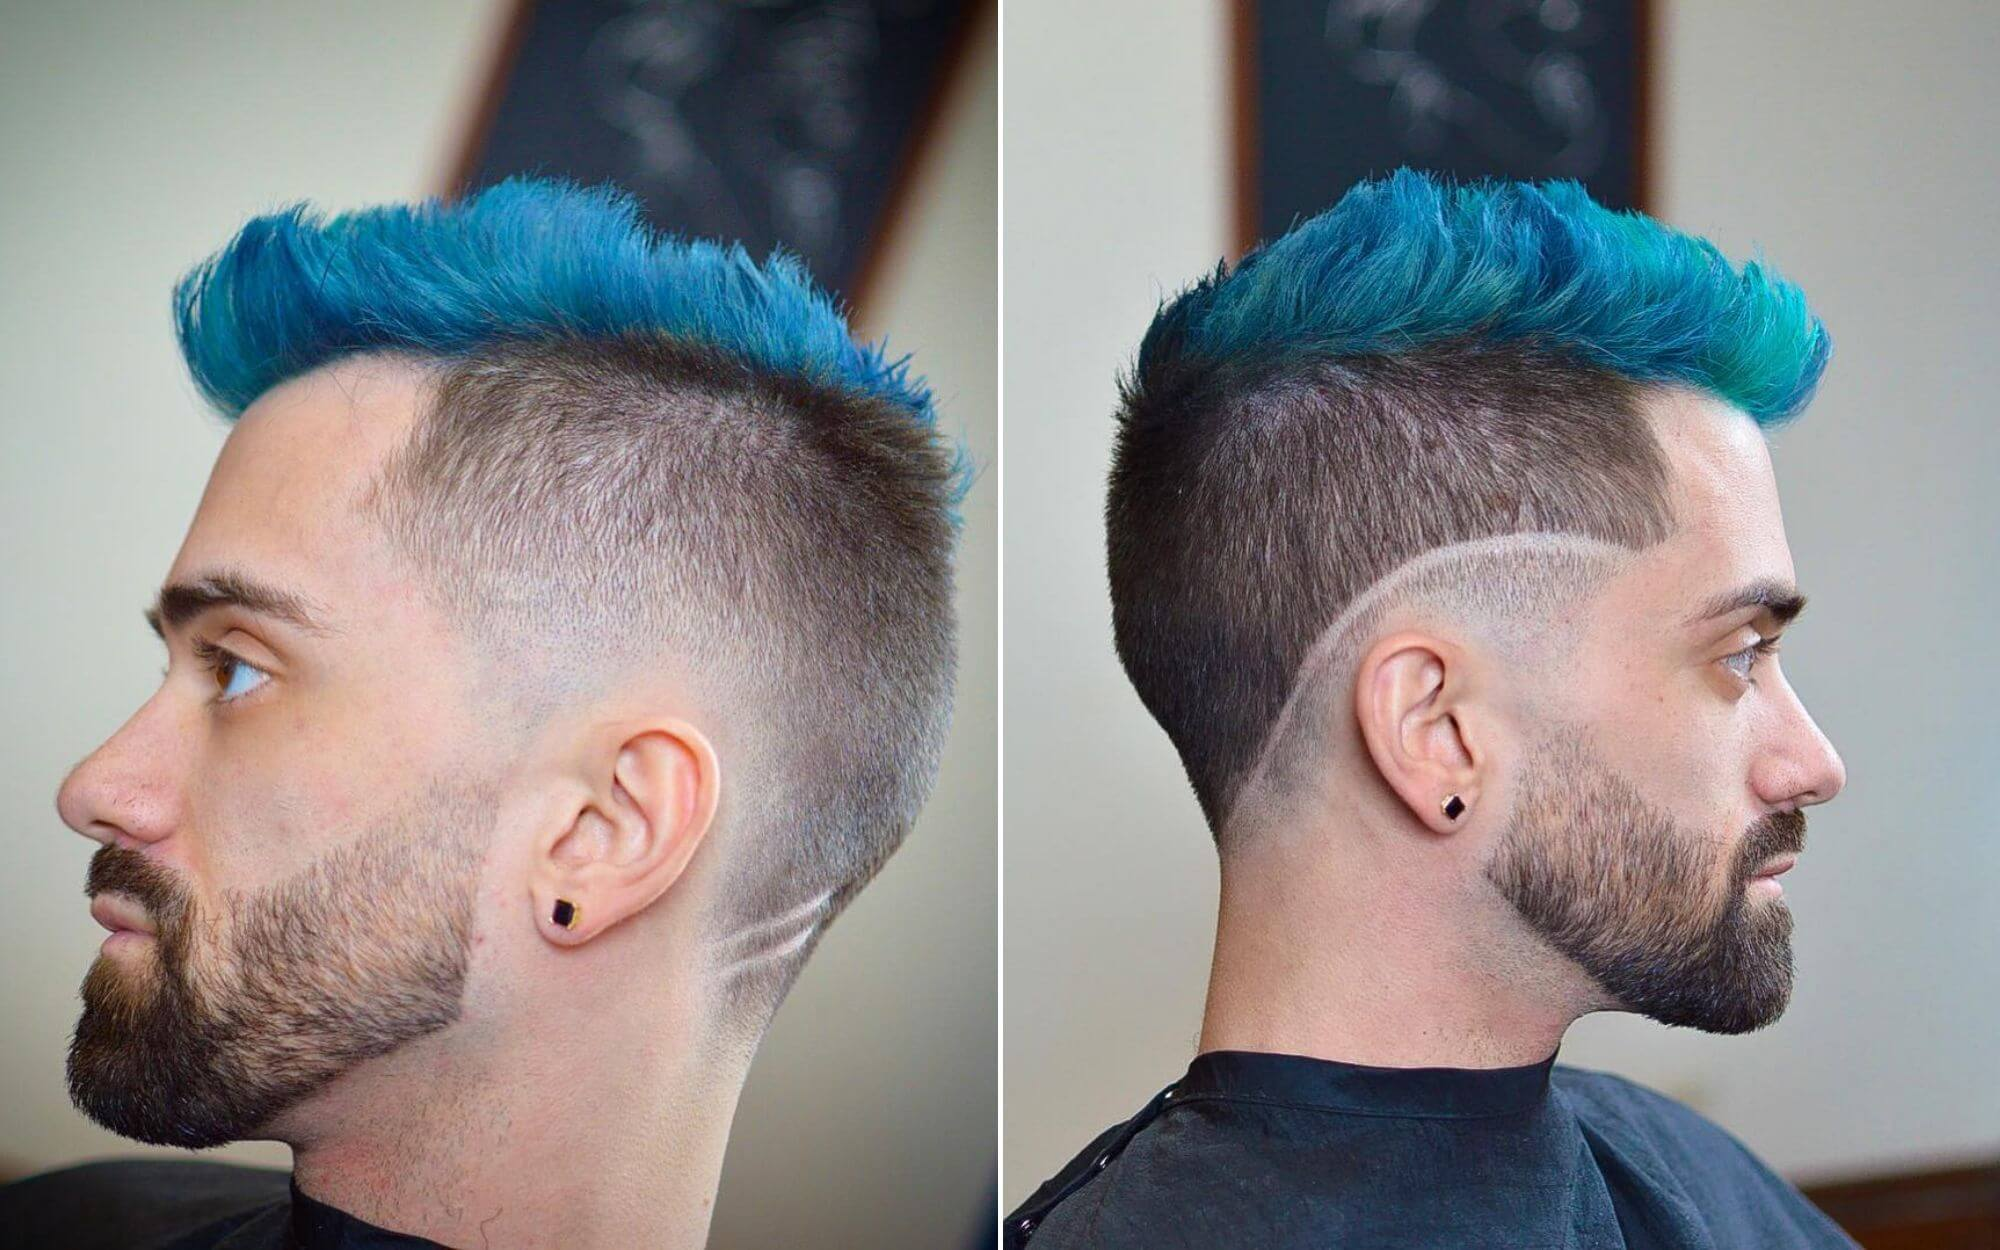 Short Undercut in the Mohawk Style for Guys with Blue Hair